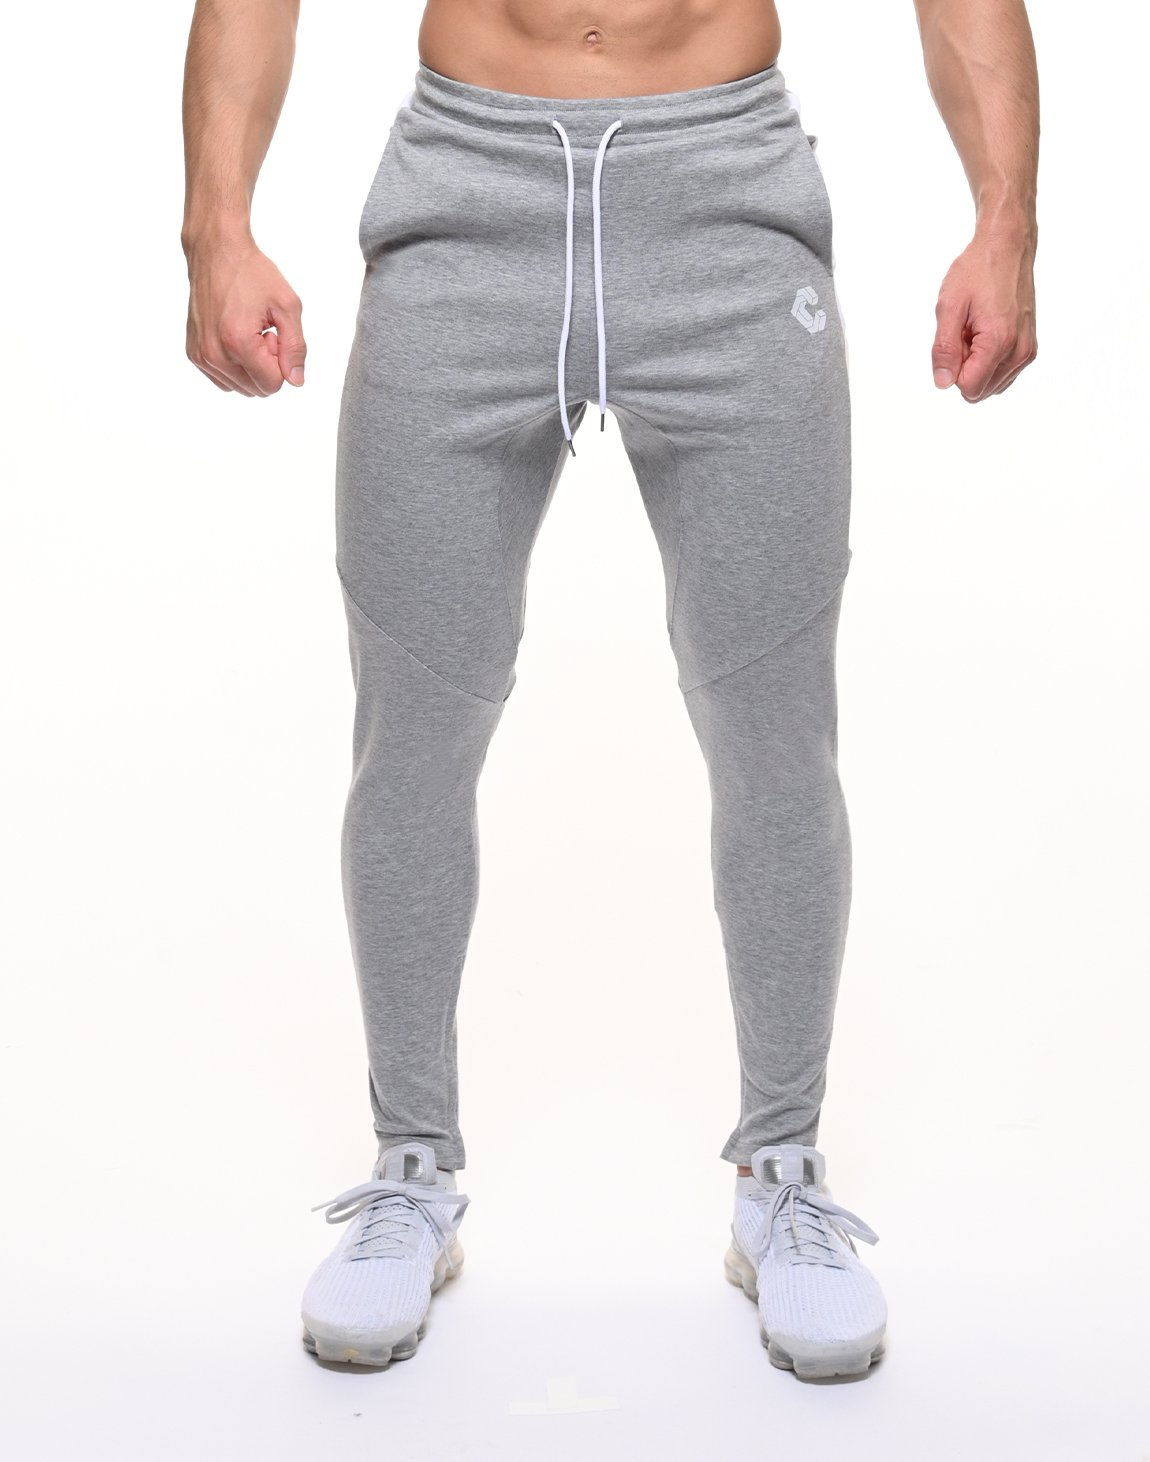 <img class='new_mark_img1' src='https://img.shop-pro.jp/img/new/icons1.gif' style='border:none;display:inline;margin:0px;padding:0px;width:auto;' />CRONOS HALF LINE PANTS【GRAY】